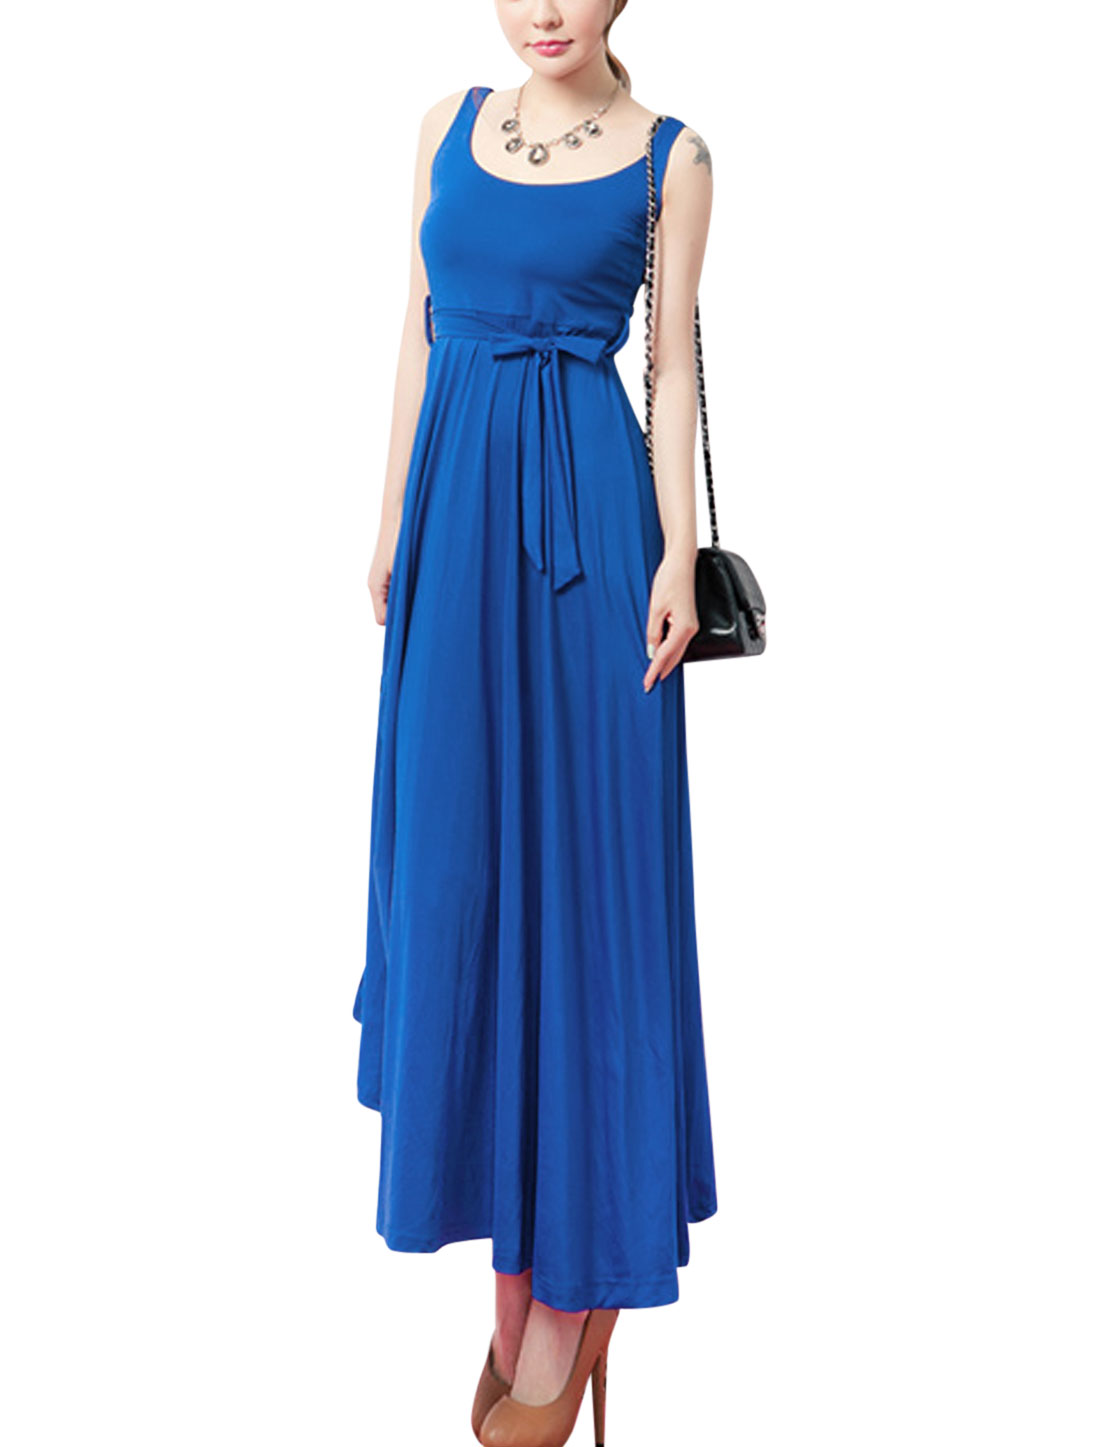 Ladies Self Tie Strap Empire Waist Elegant Tank Dress Royal Blue S